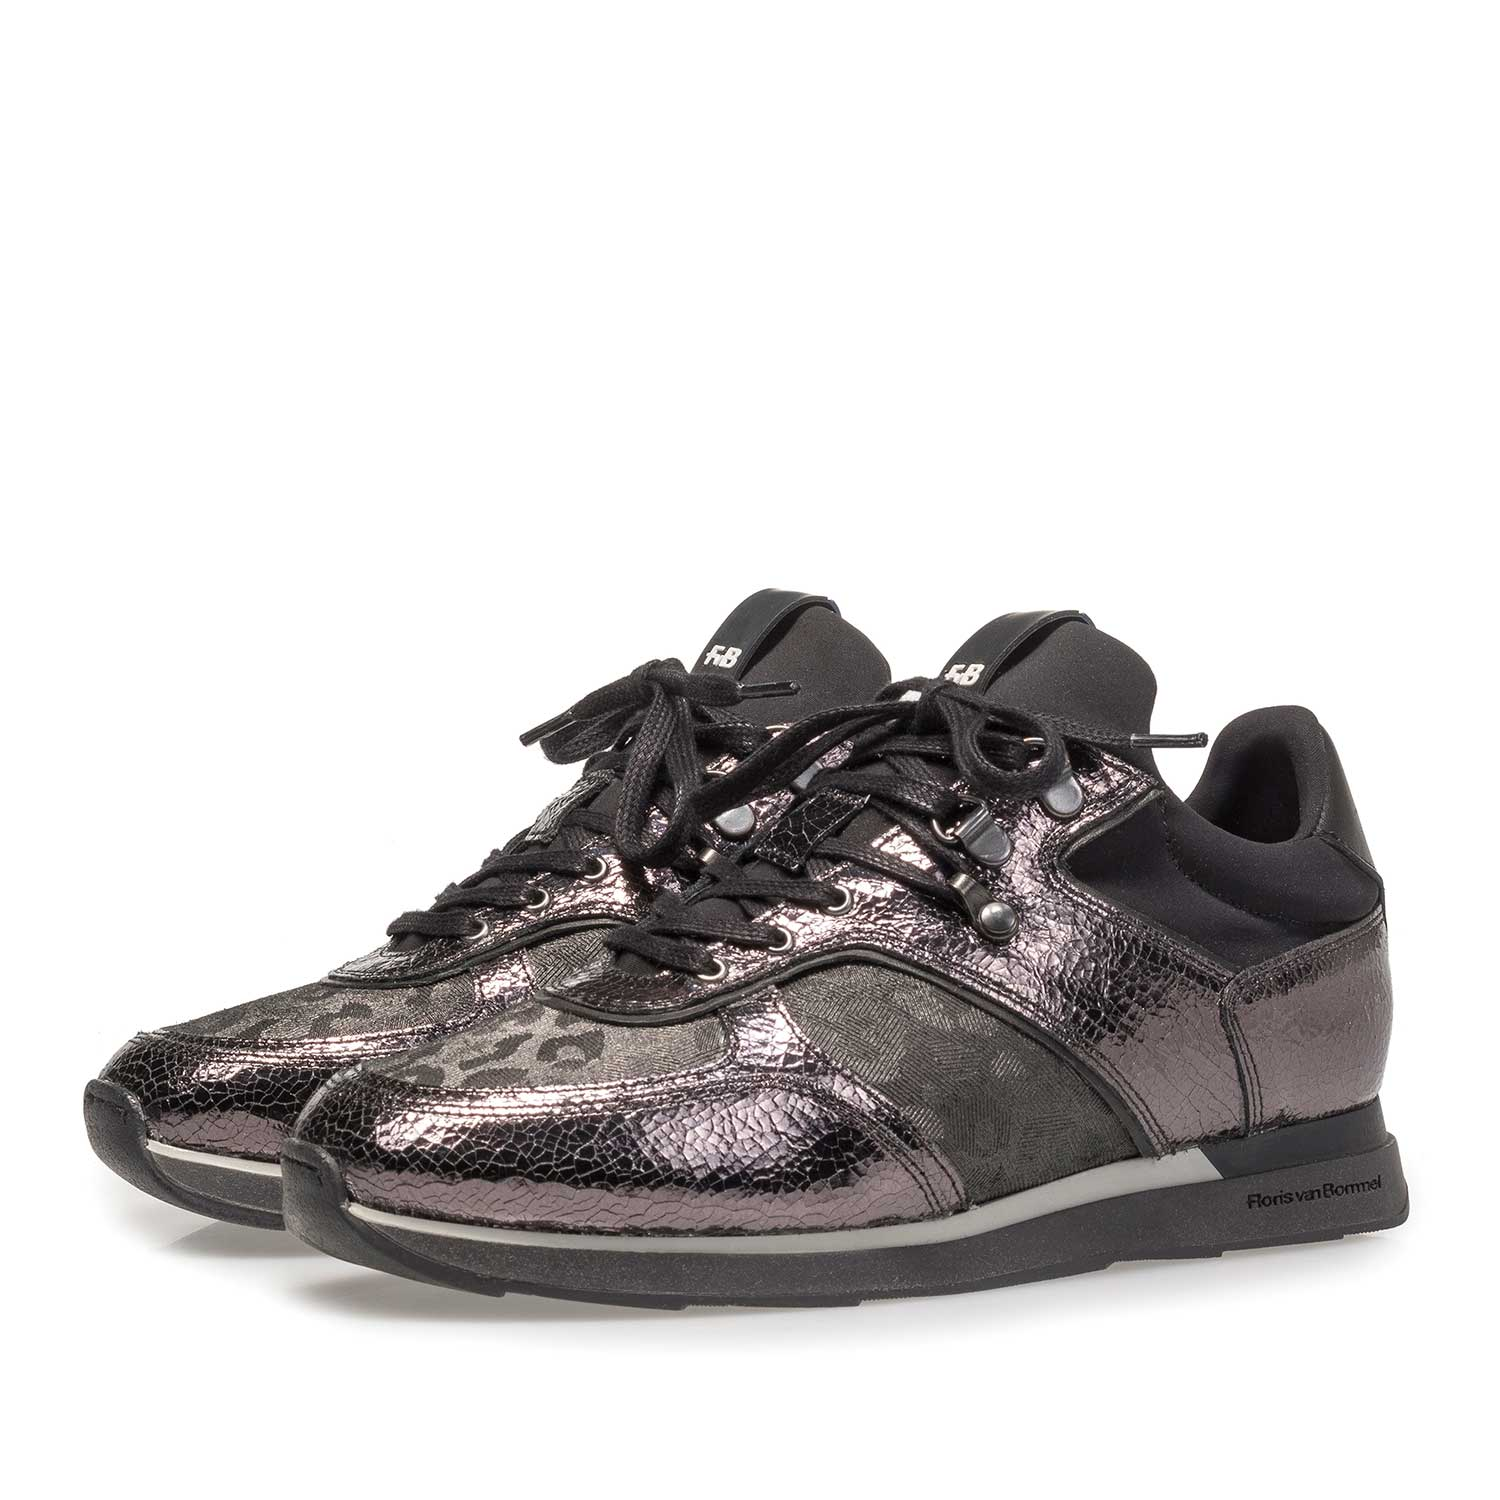 85278/03 - Dark grey leather sneaker with metallic print